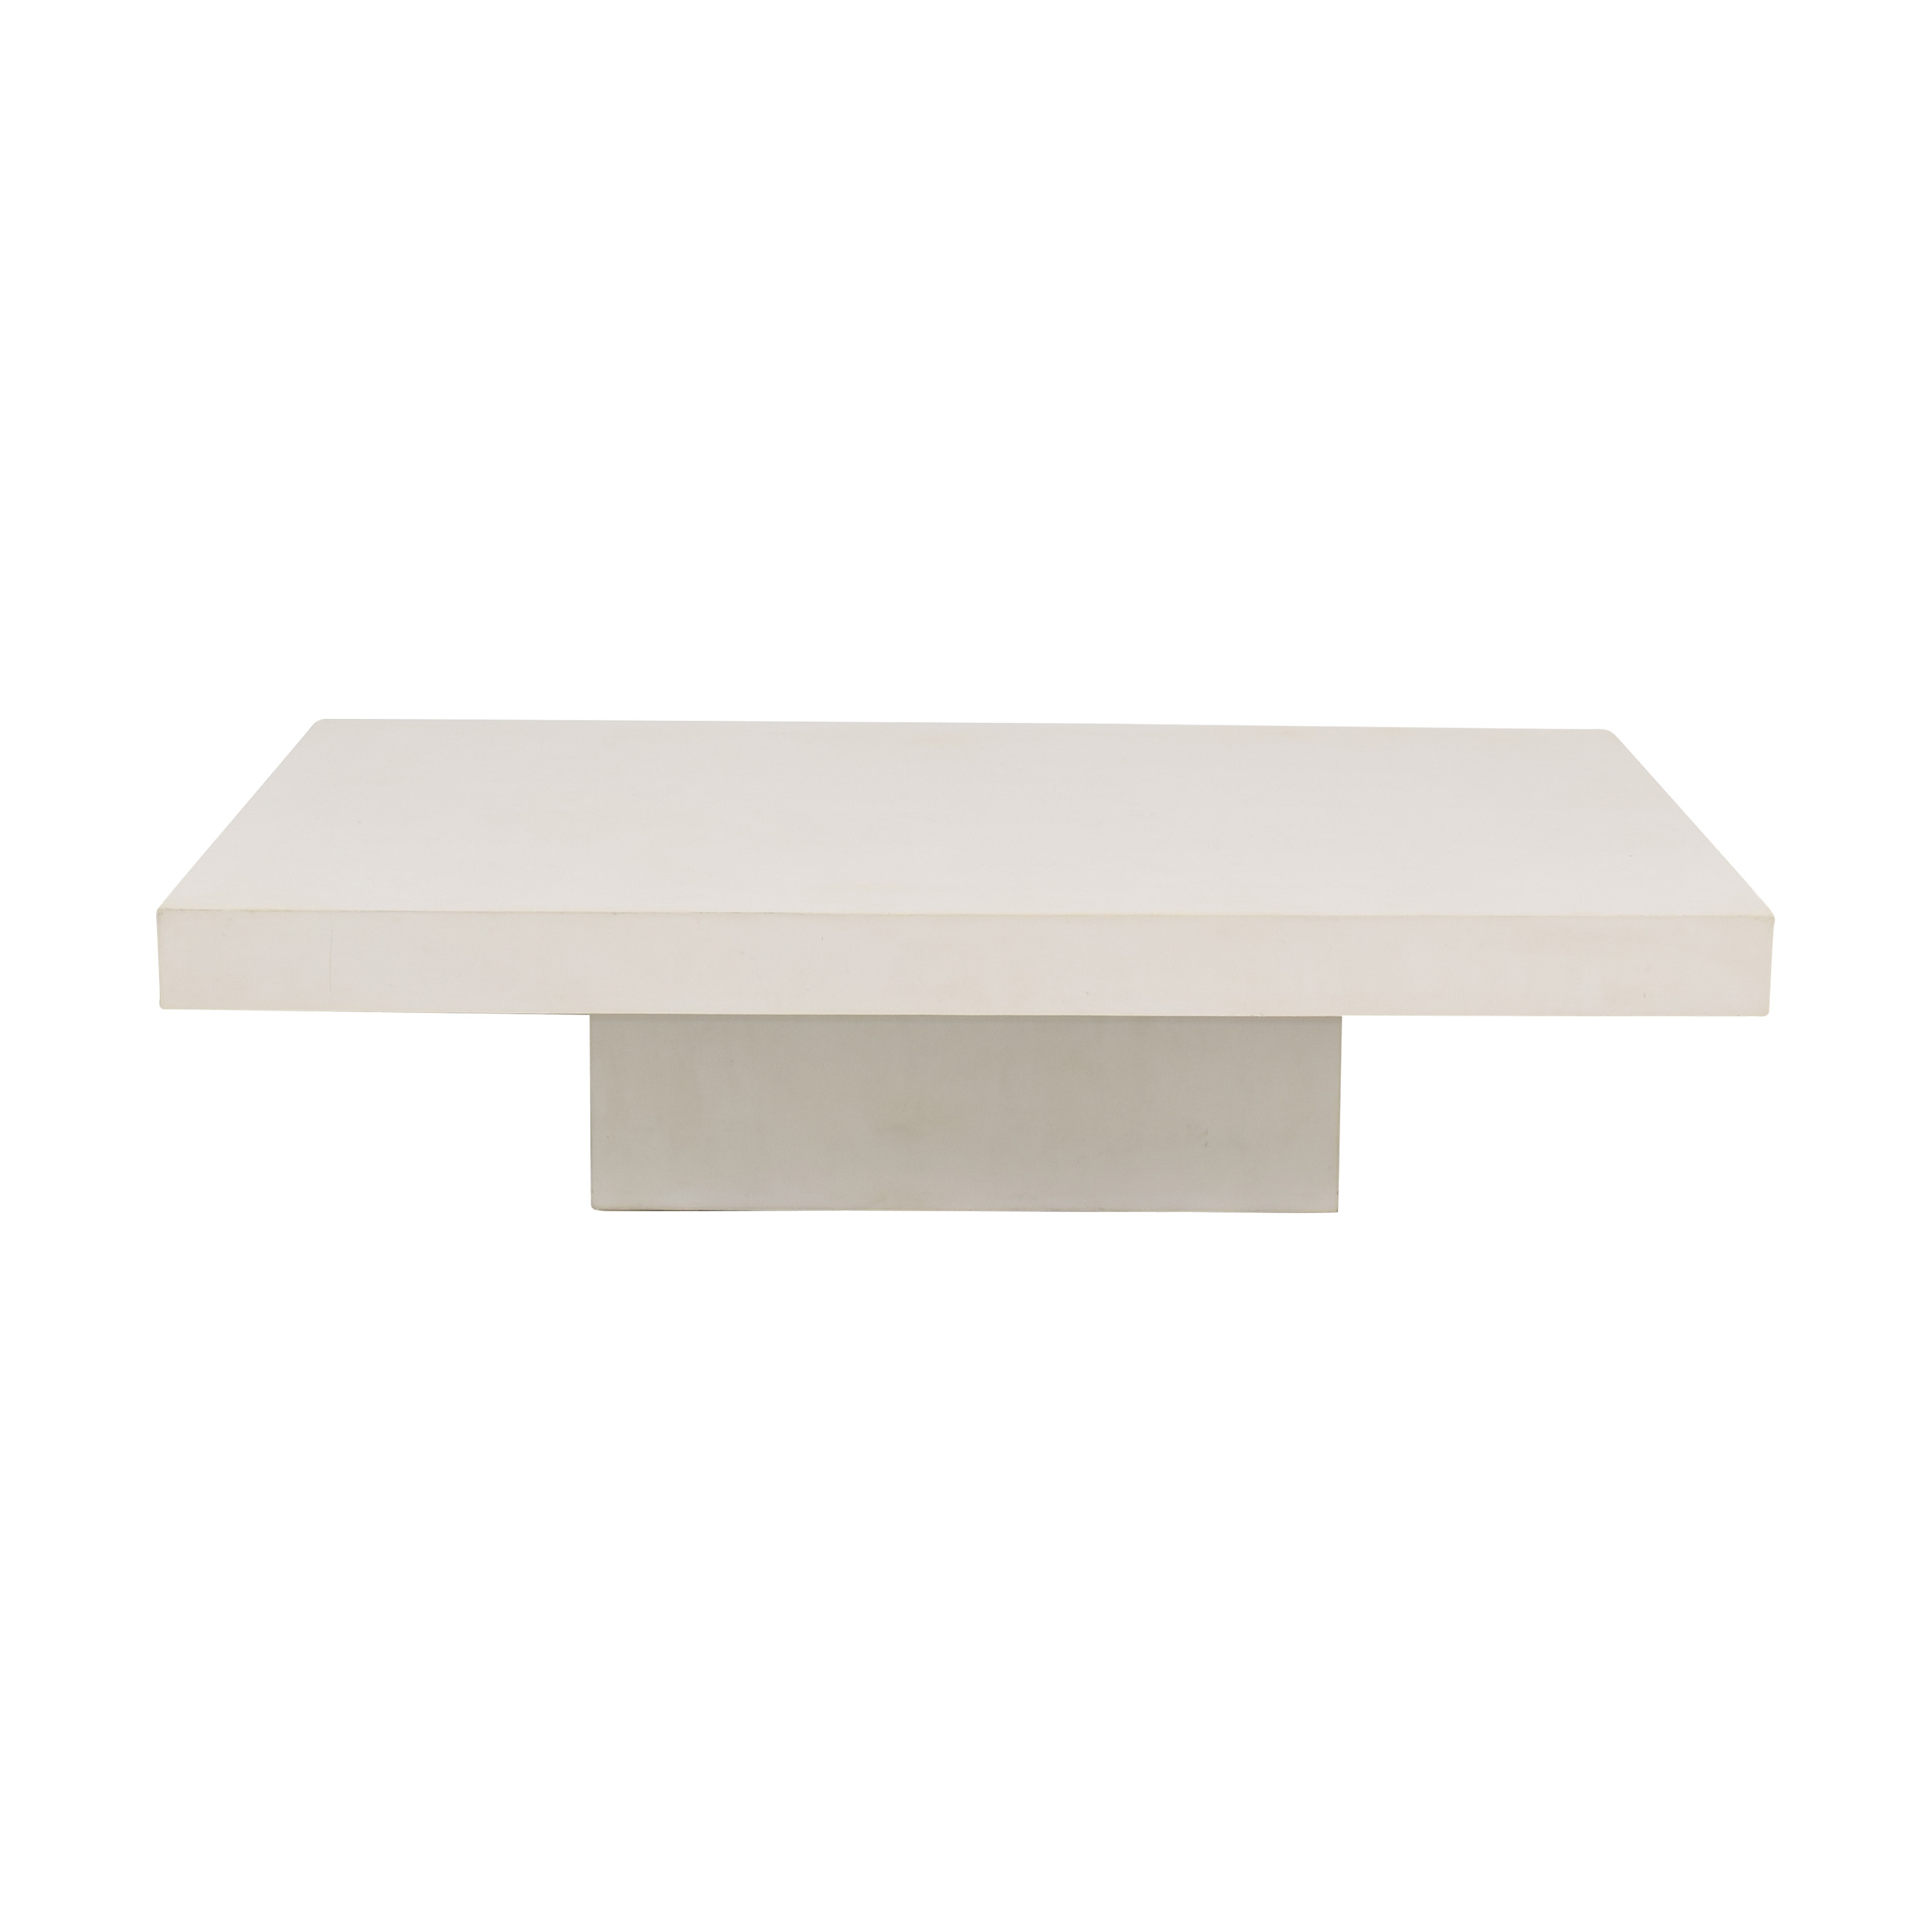 CB2 CB2 Element Cement Coffee Table price